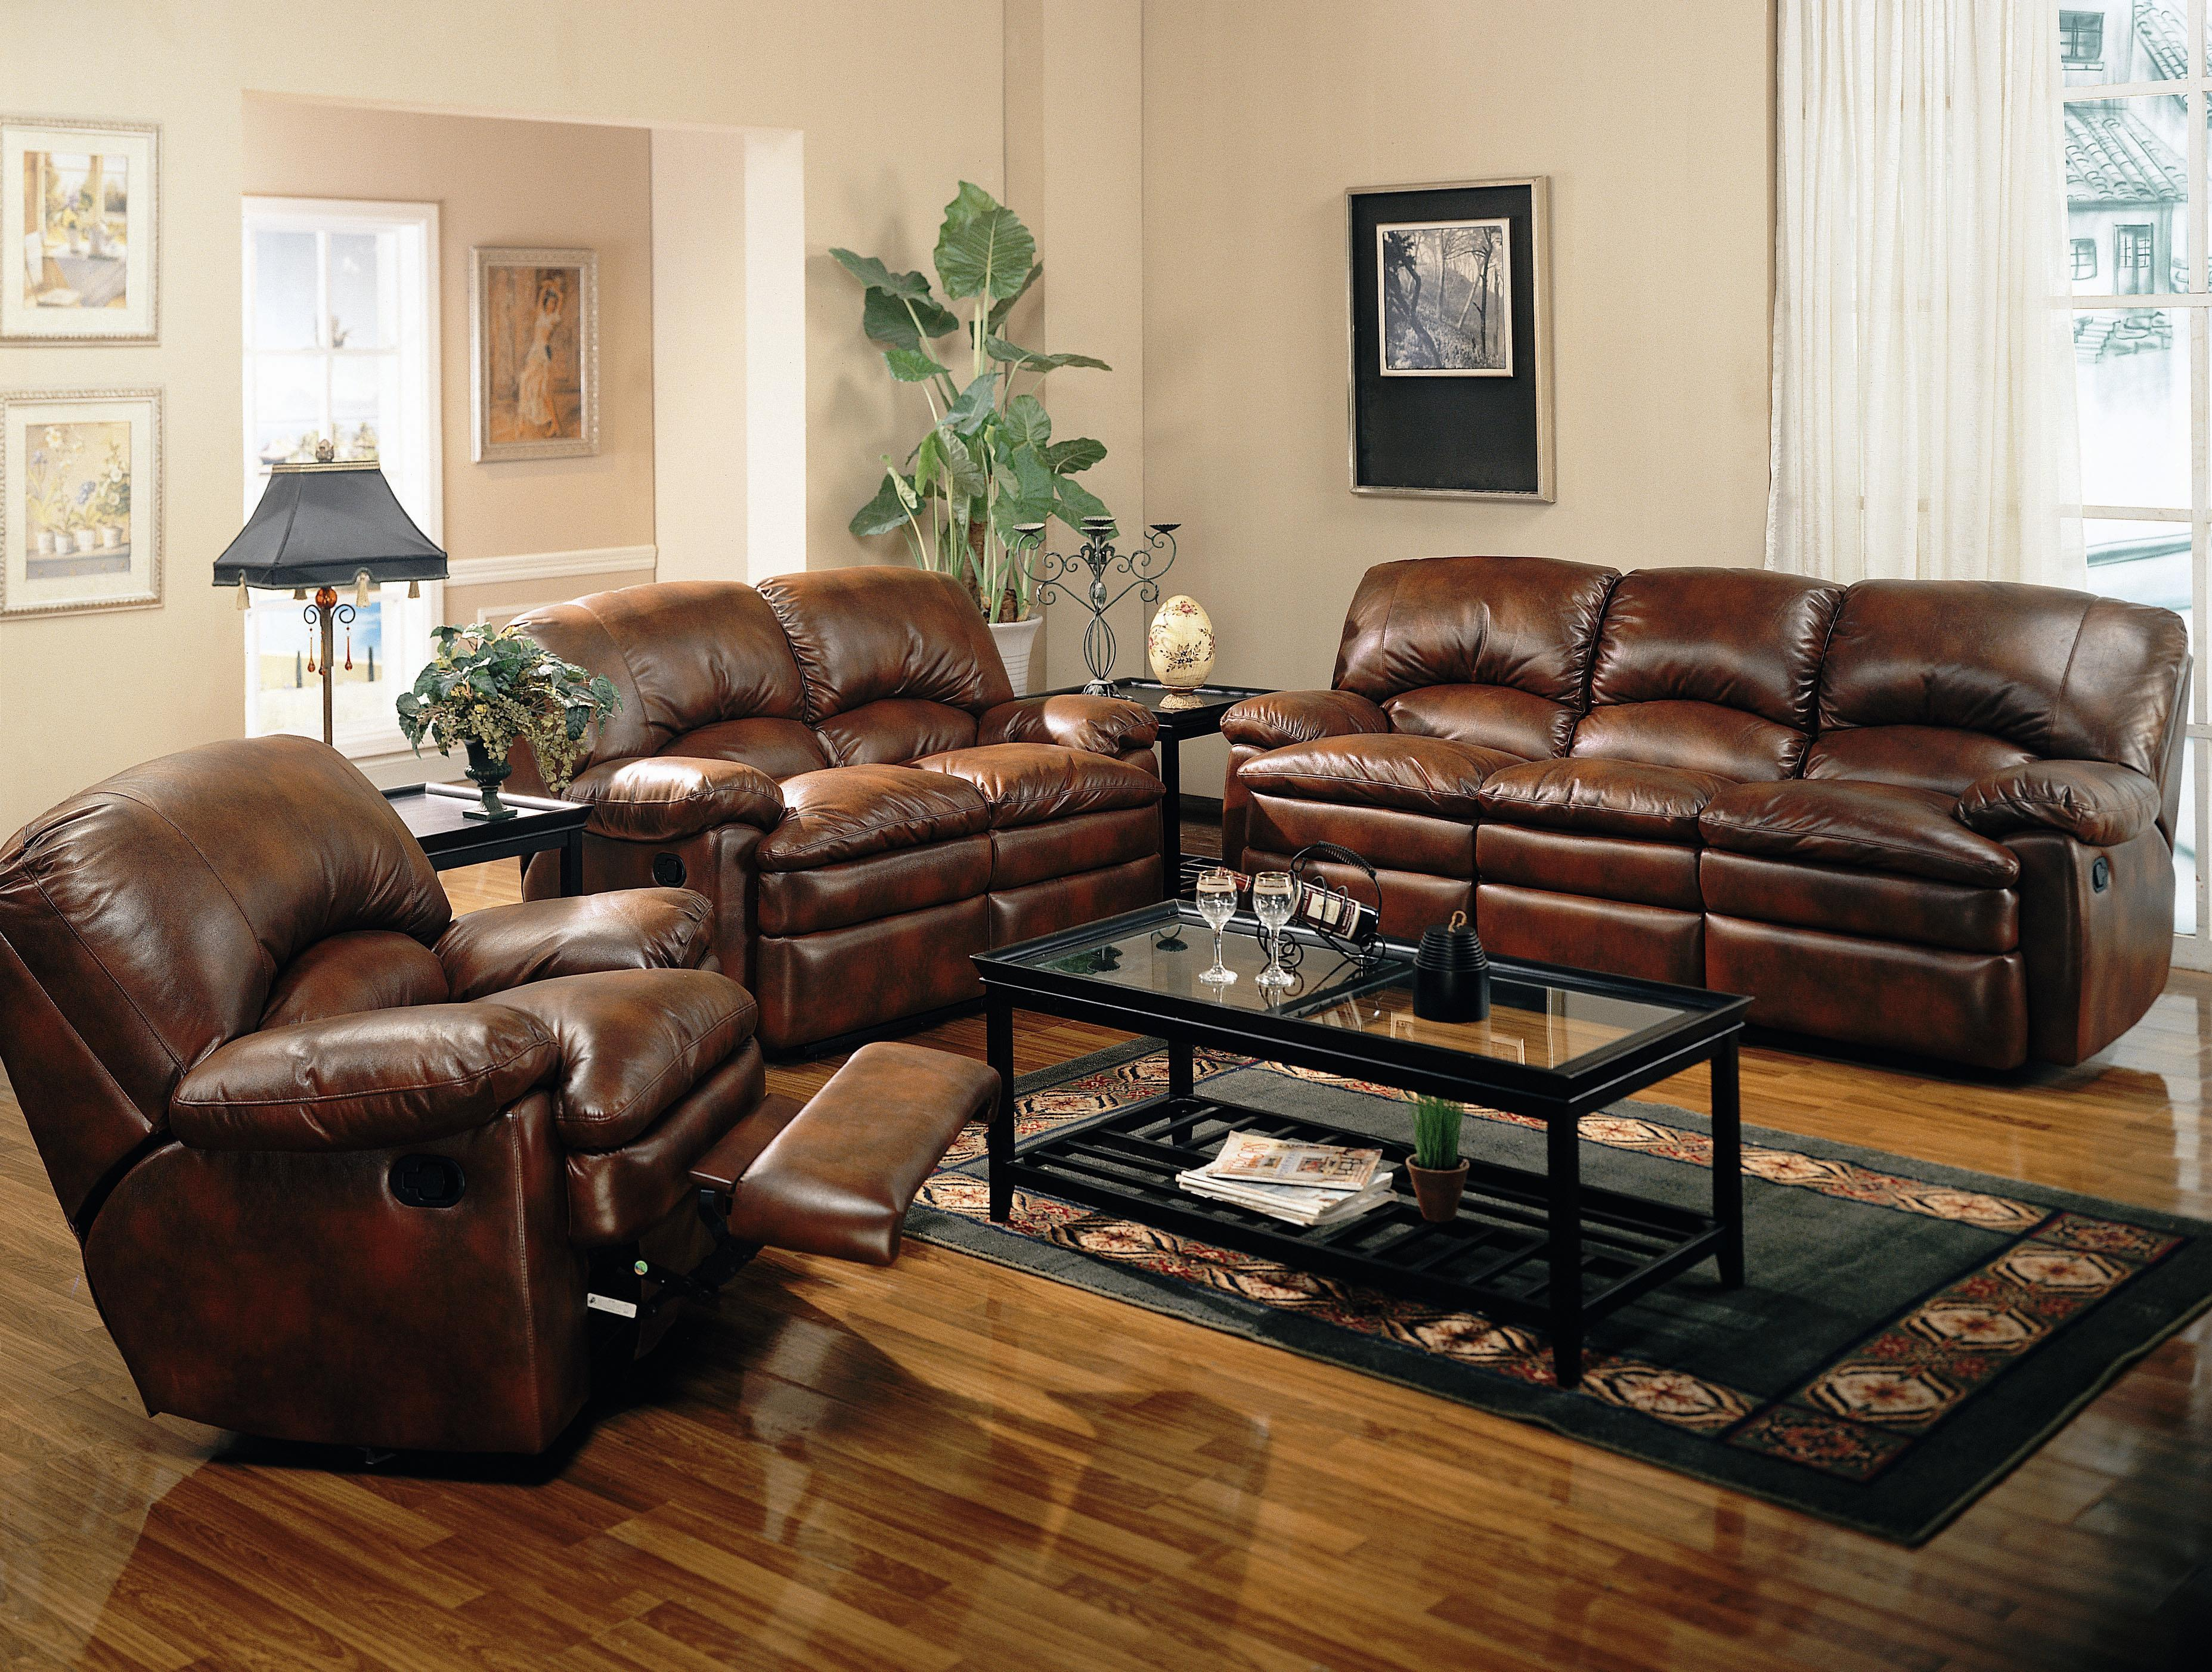 cool sofa set clearance decoration-Contemporary sofa Set Clearance Wallpaper